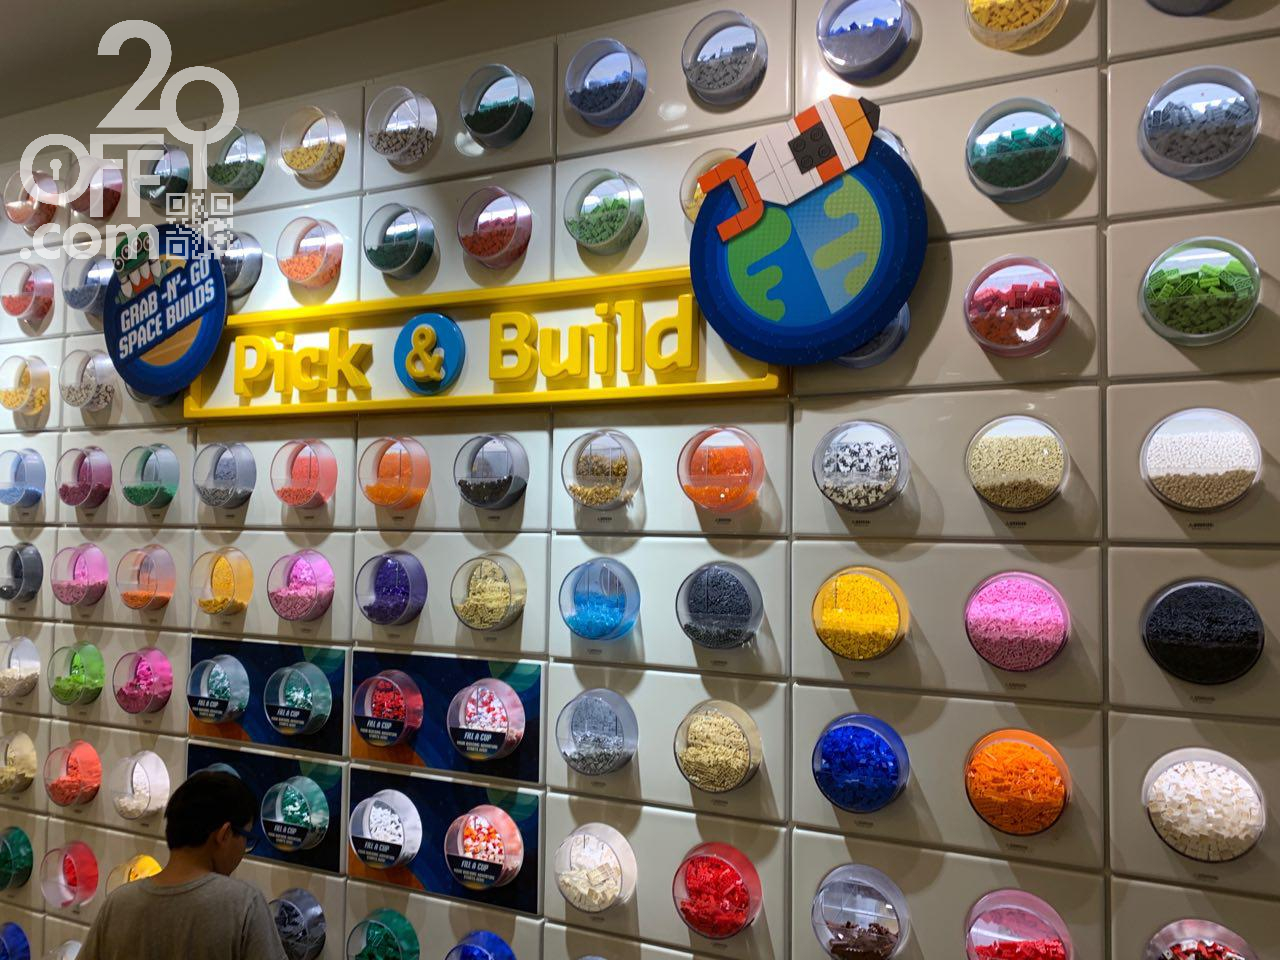 LEGO Pick And Build Wall